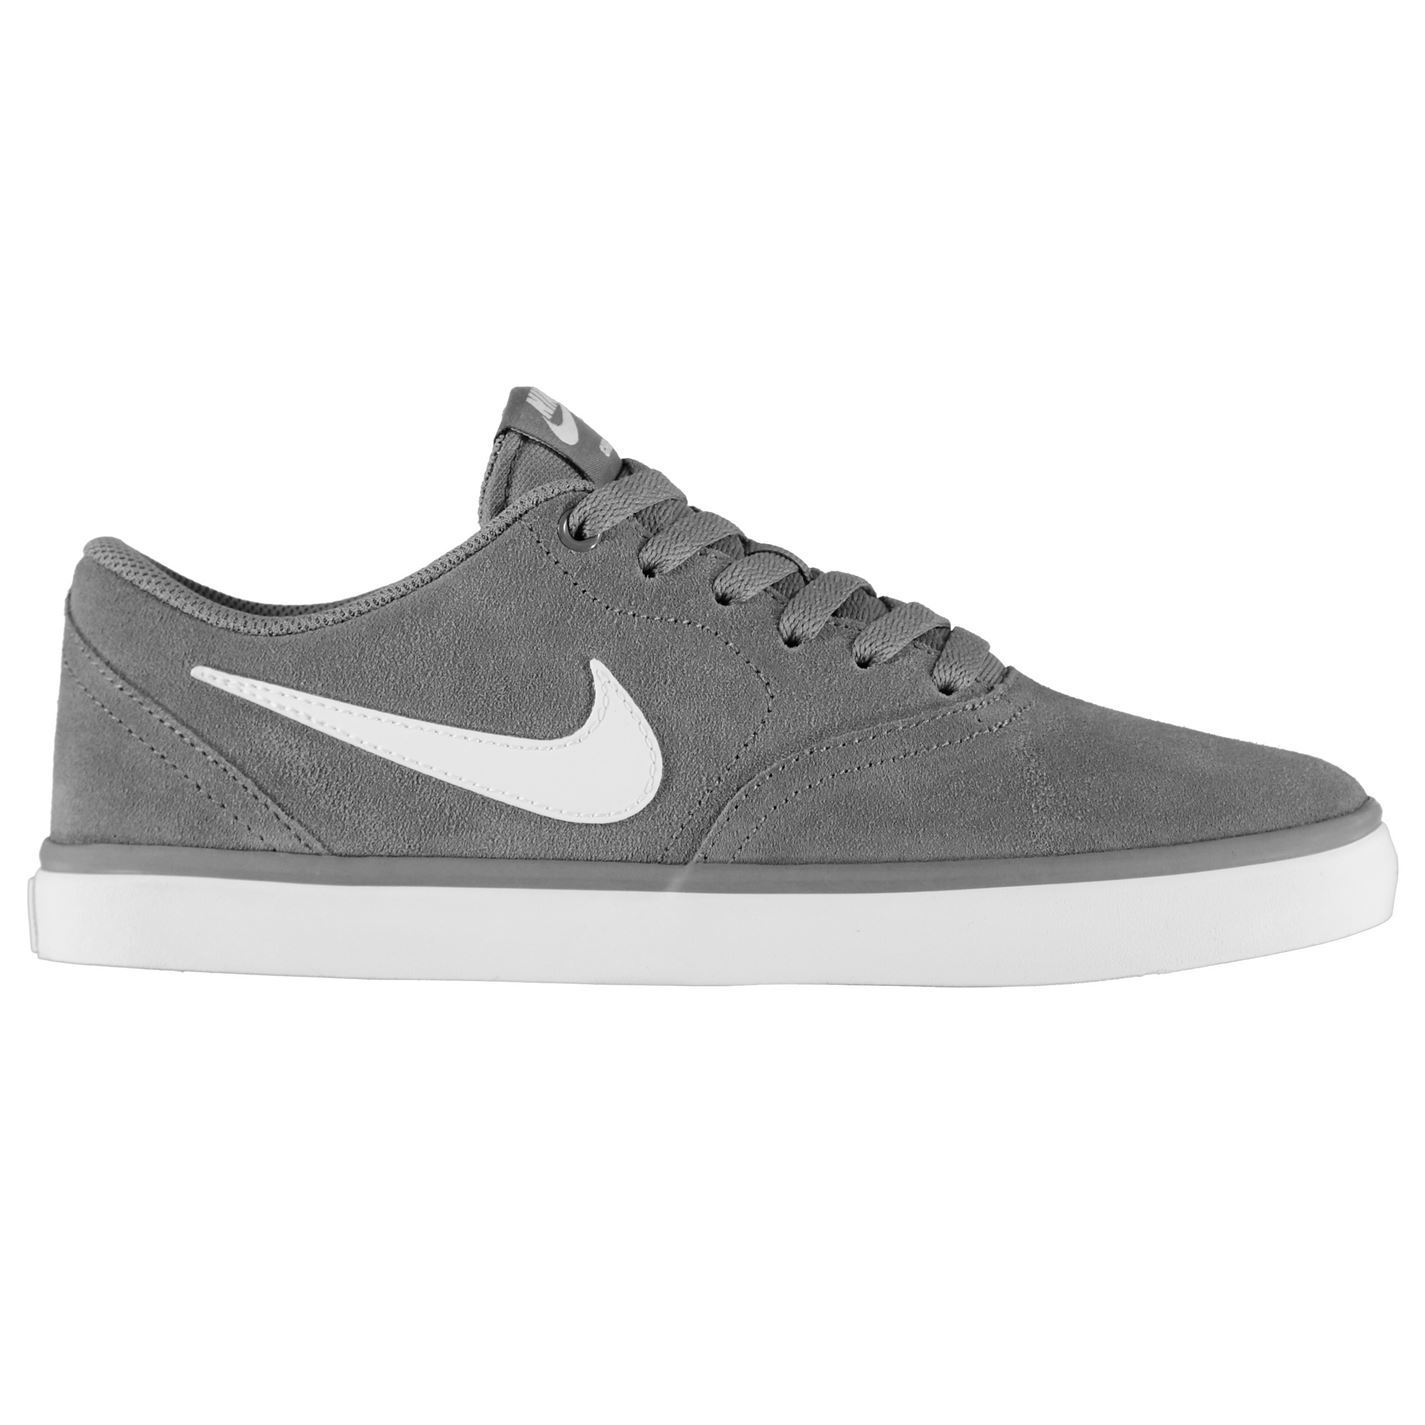 Volver a llamar Primer ministro Realista  Nike SB Check Solar Skate Shoes Mens Grey/White Skateboarding Trainers  Sneakers | eBay